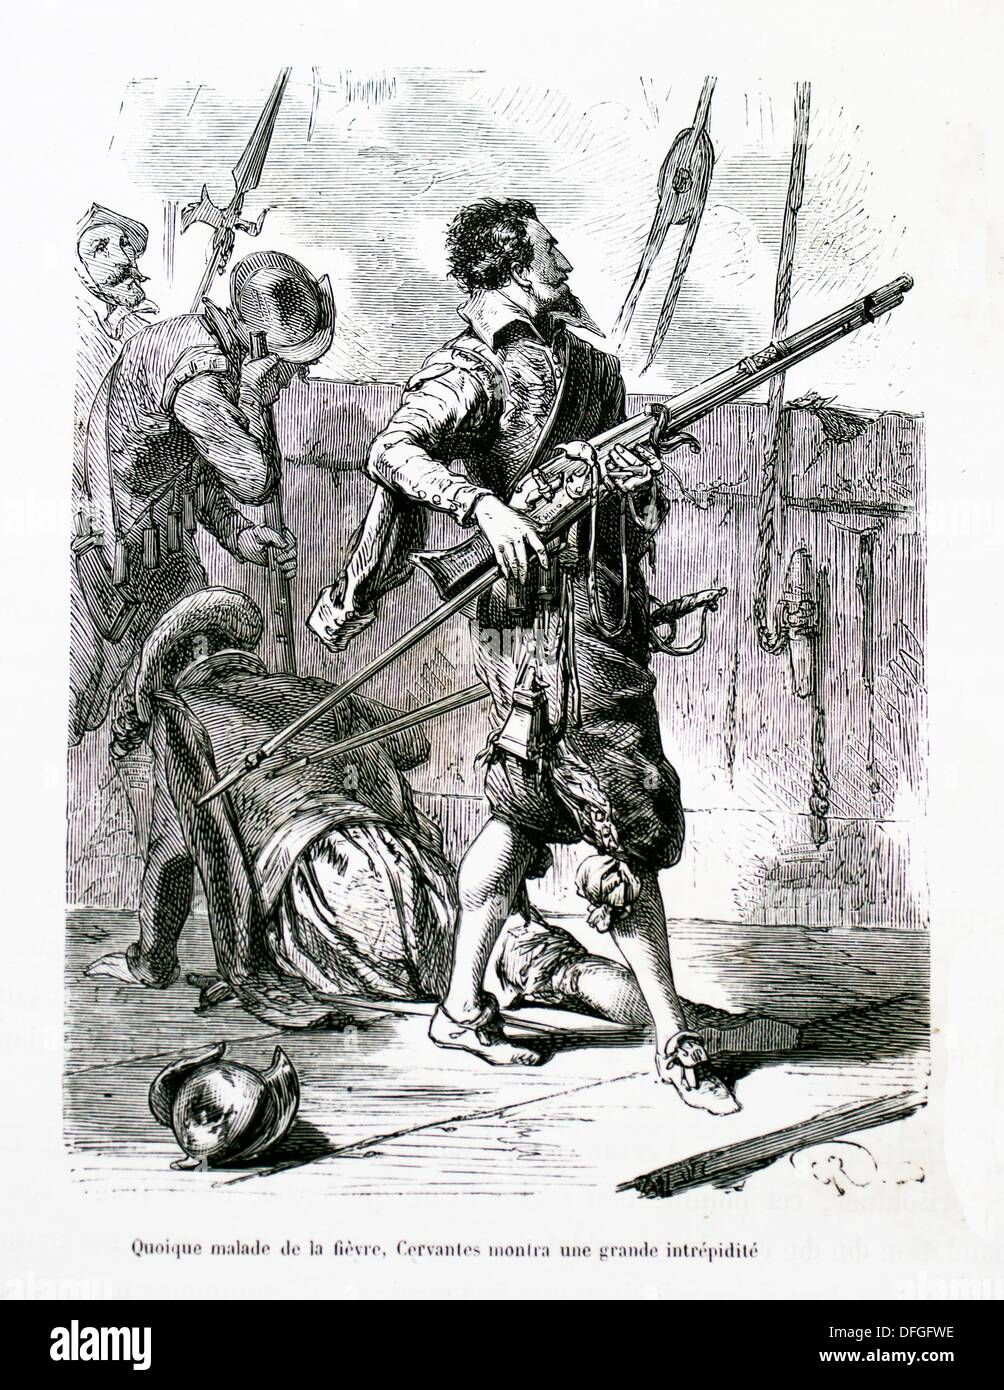 Miguel de Cervantes-Saavedra: ´although ill with fever, Cervantes showed great bravery ´ - Stock Image